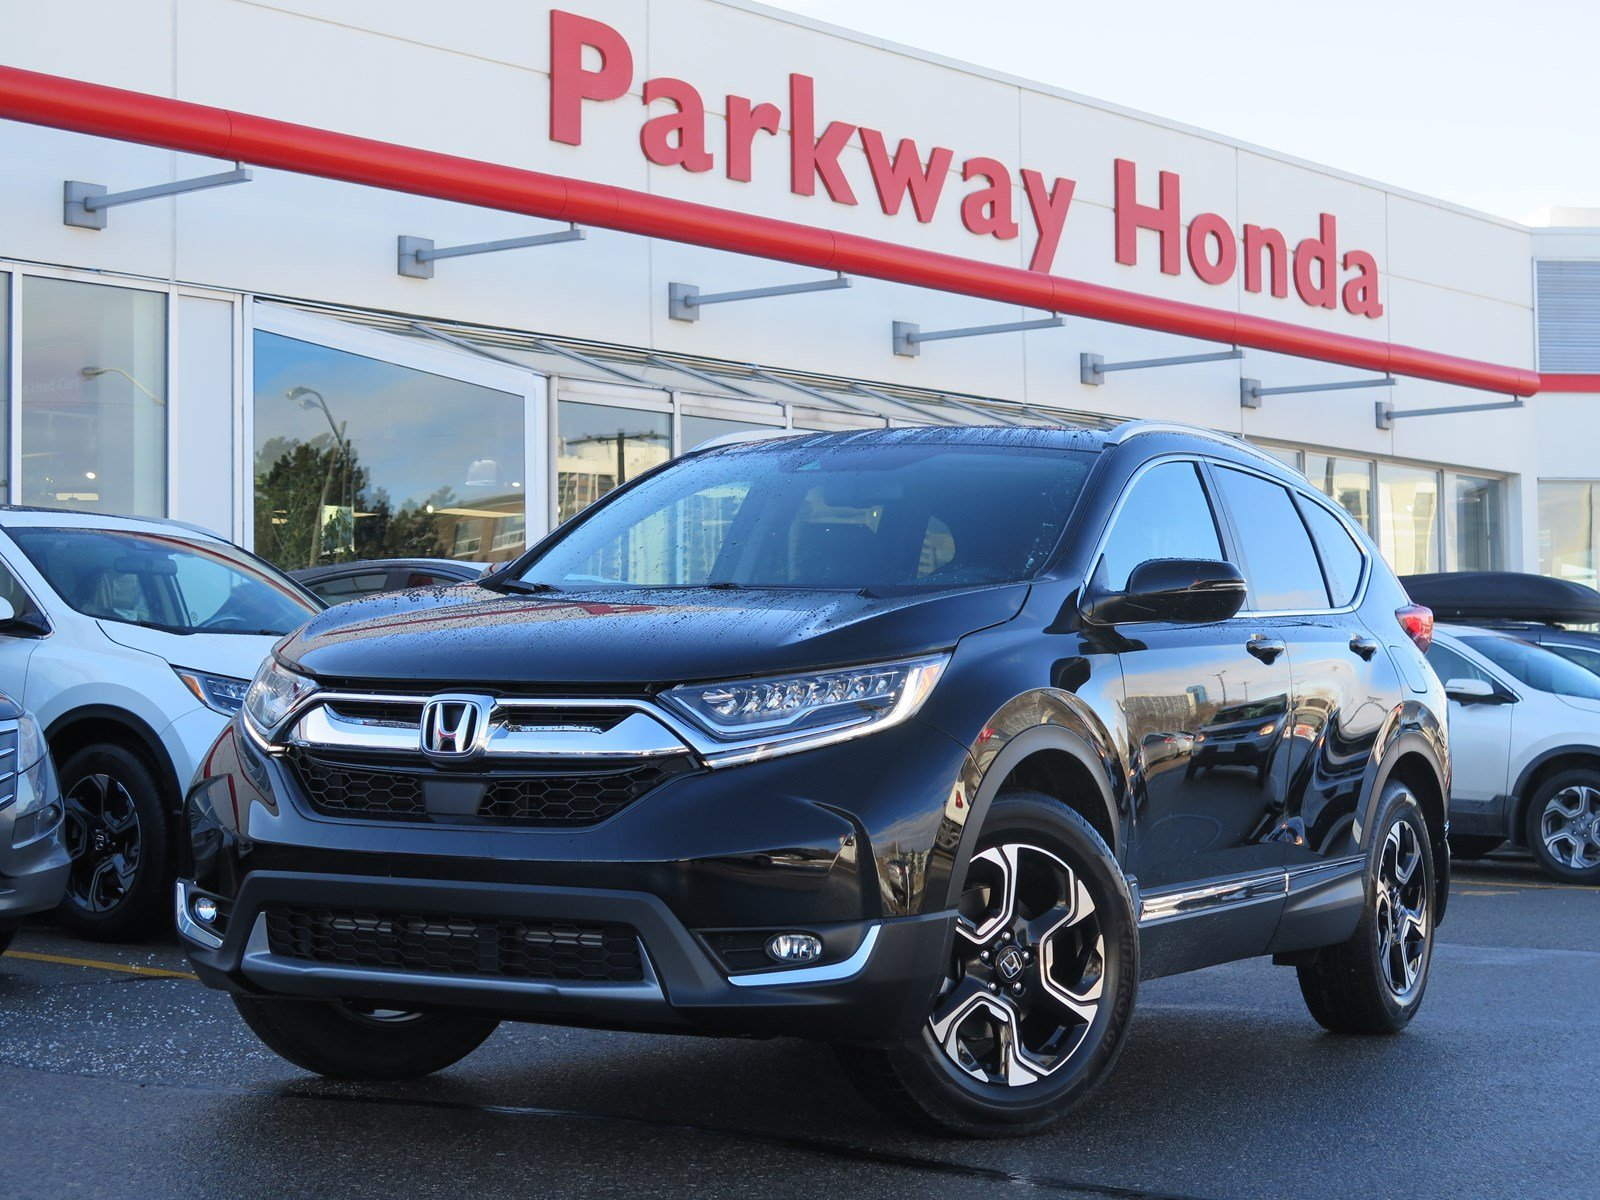 Pre-Owned 2018 Honda CR-V Touring - Demo - Not for sale